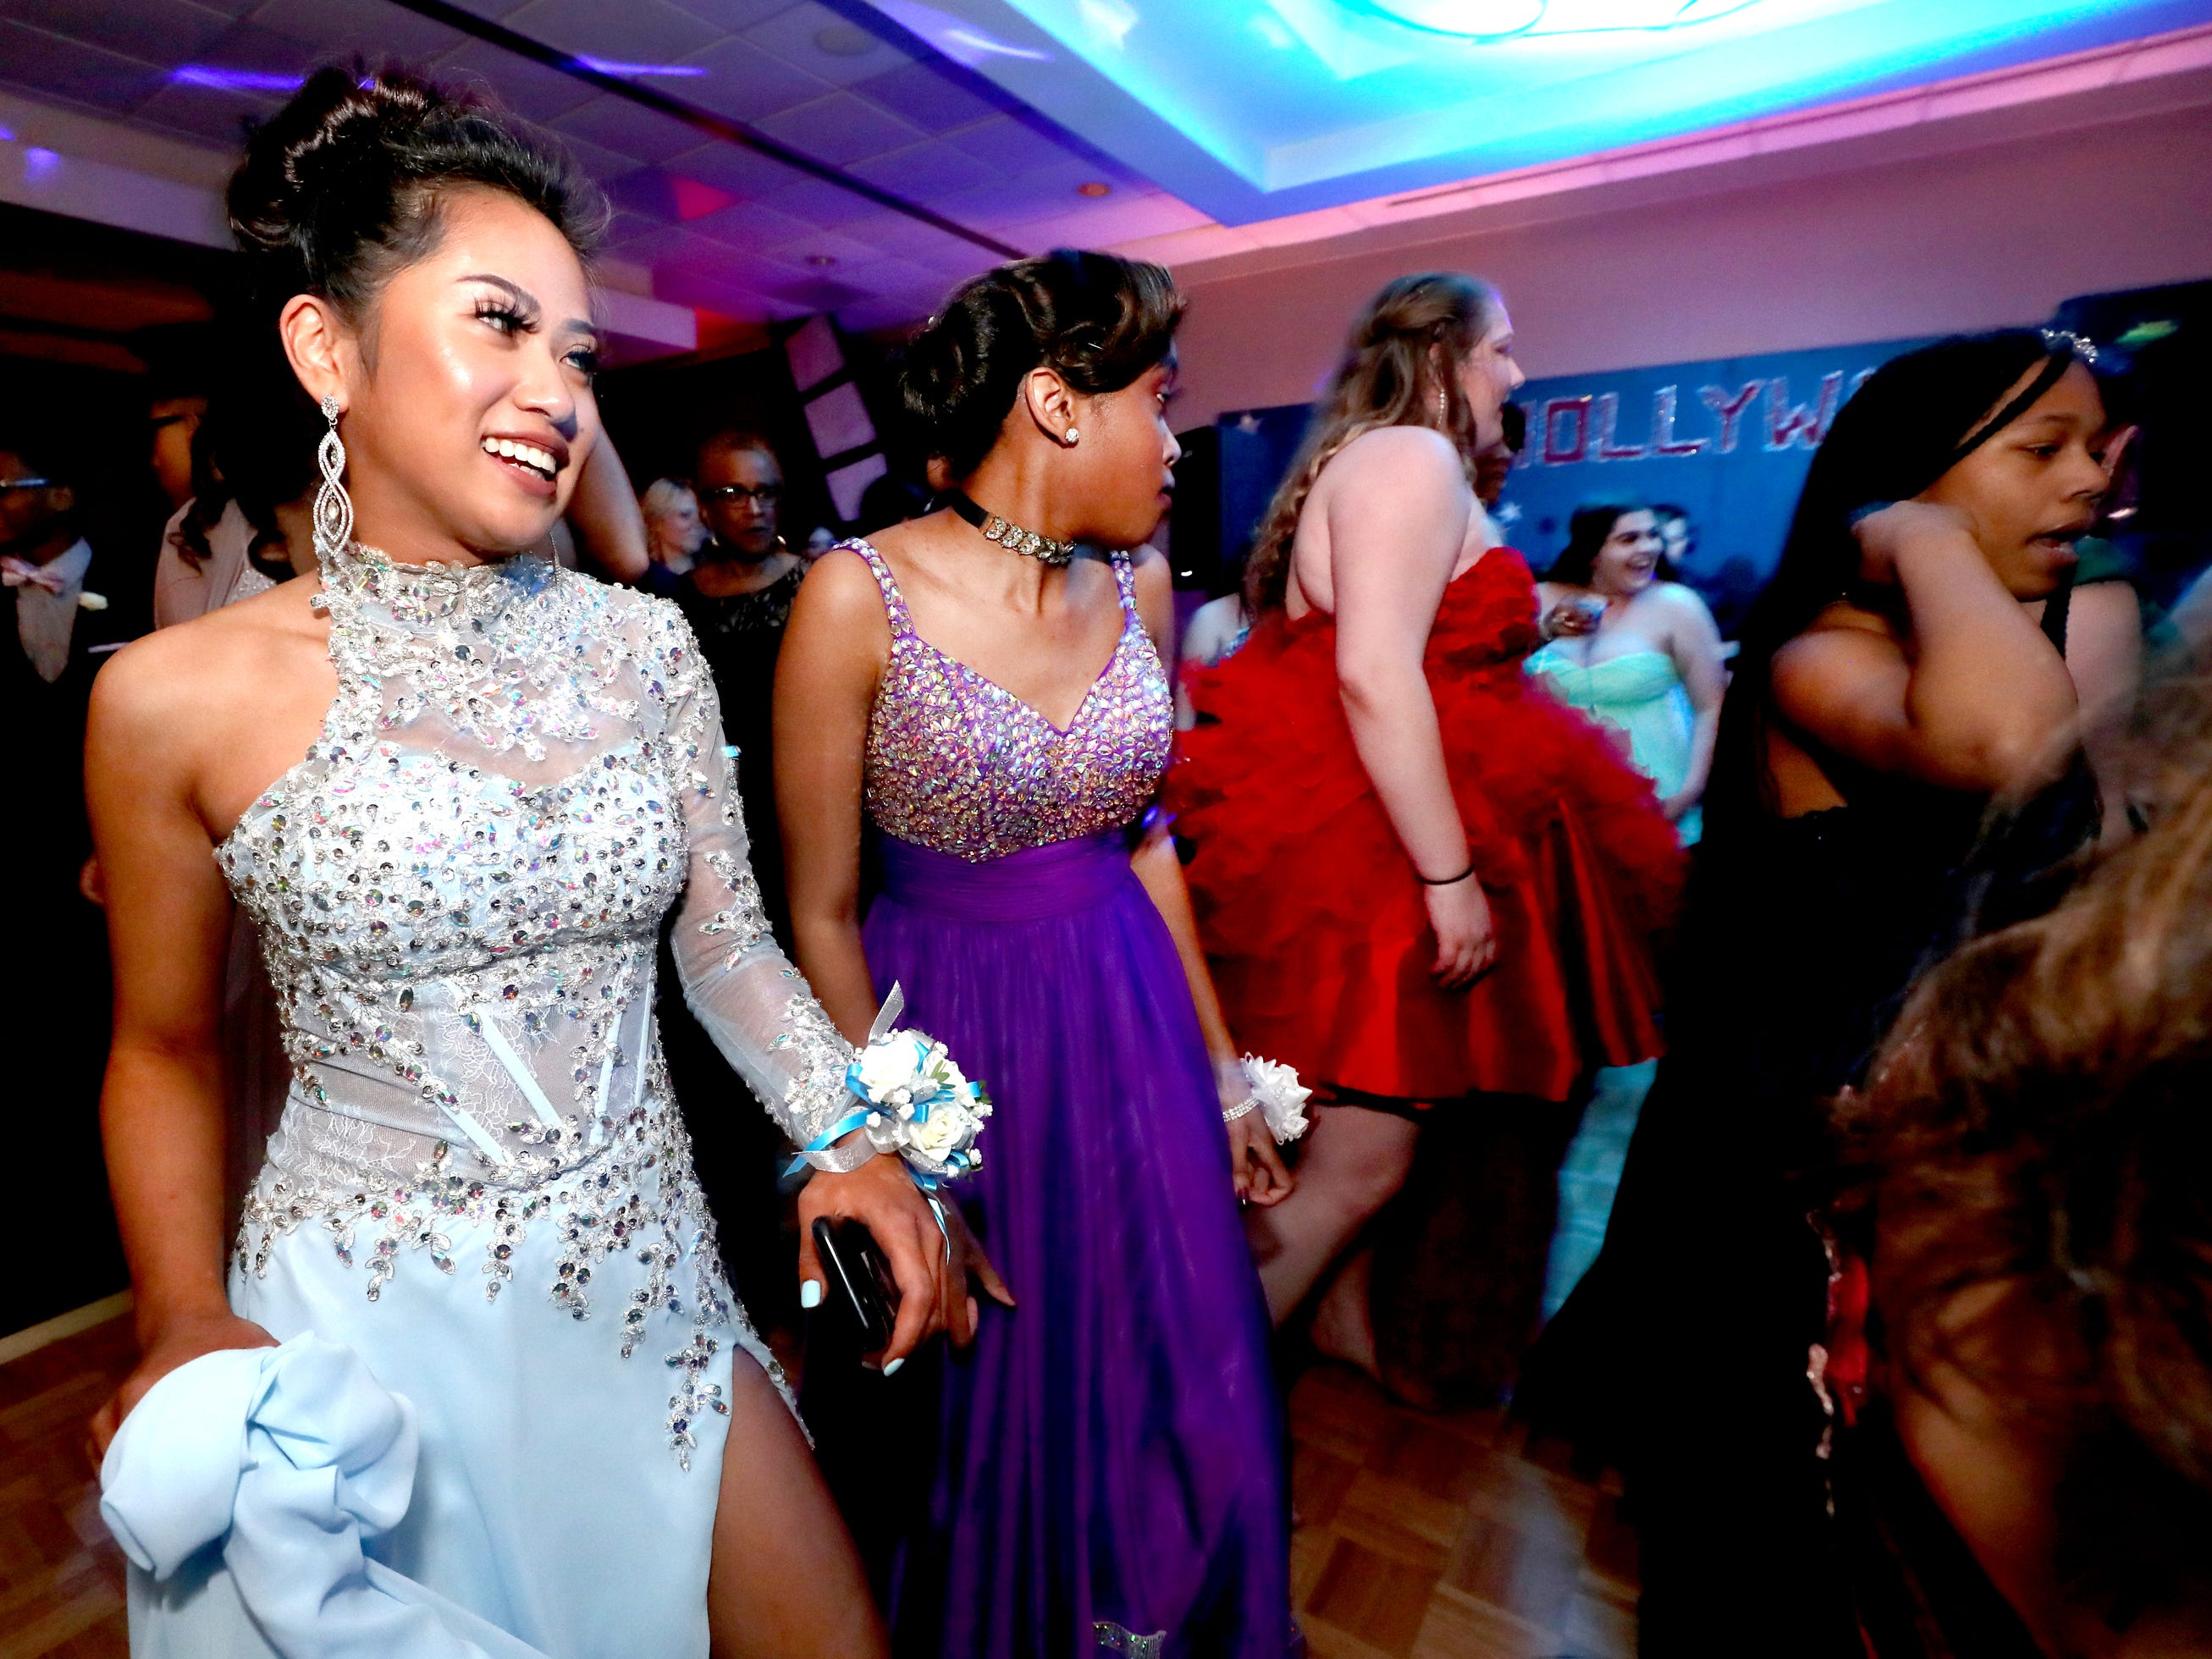 Anna Kounboribounsak dances on the dance floor at Holloway's prom at the DoubleTree on Thursday April 18, 2019.